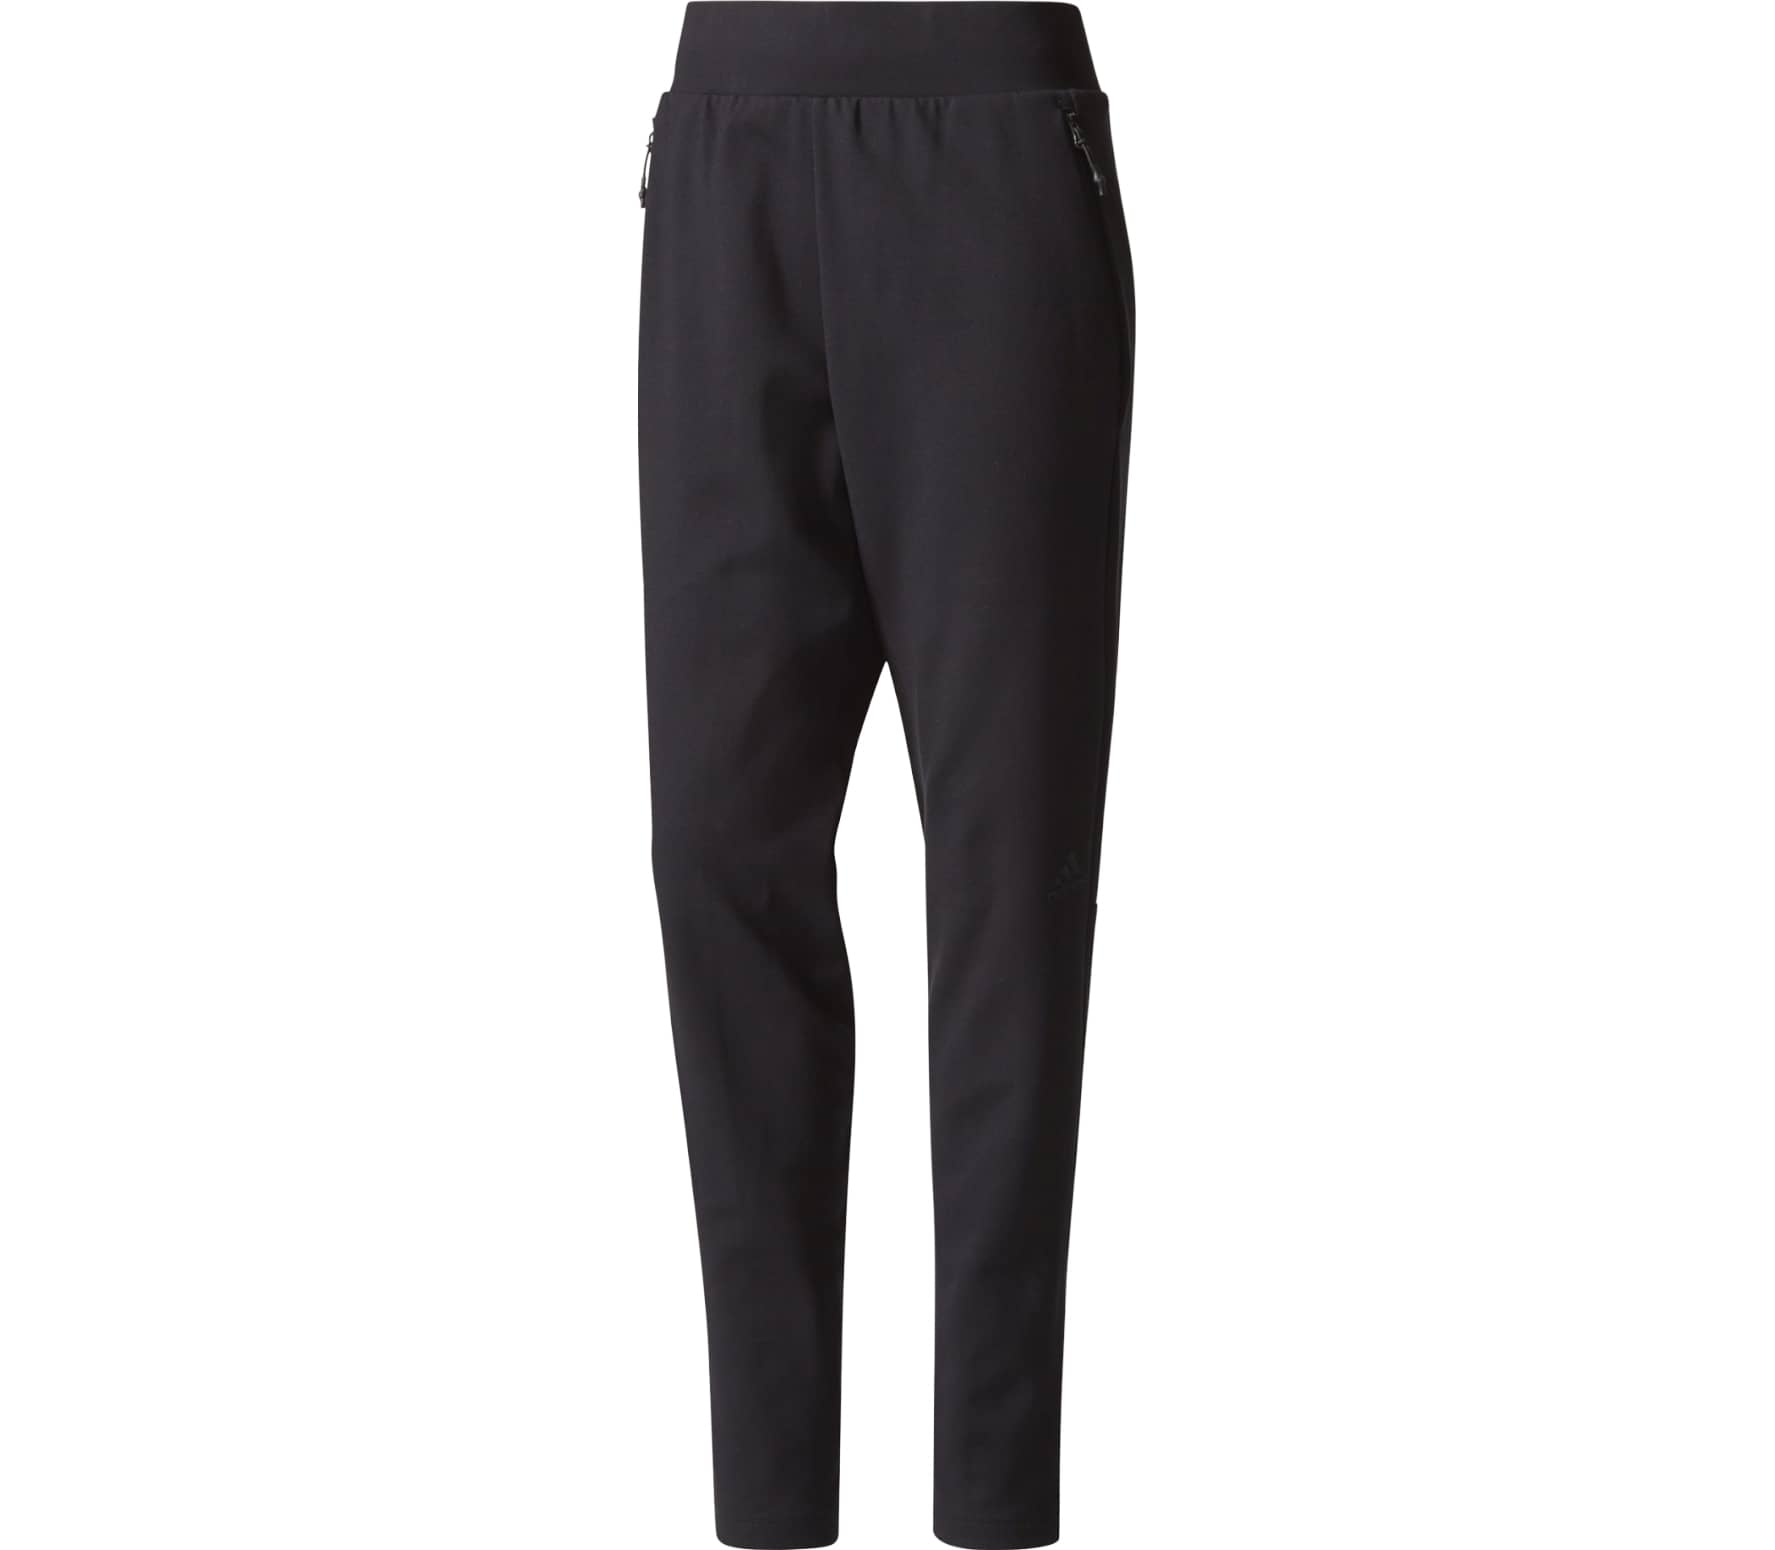 Adidas - ZNE STRIKE PANT Damen Trainingshose (s...